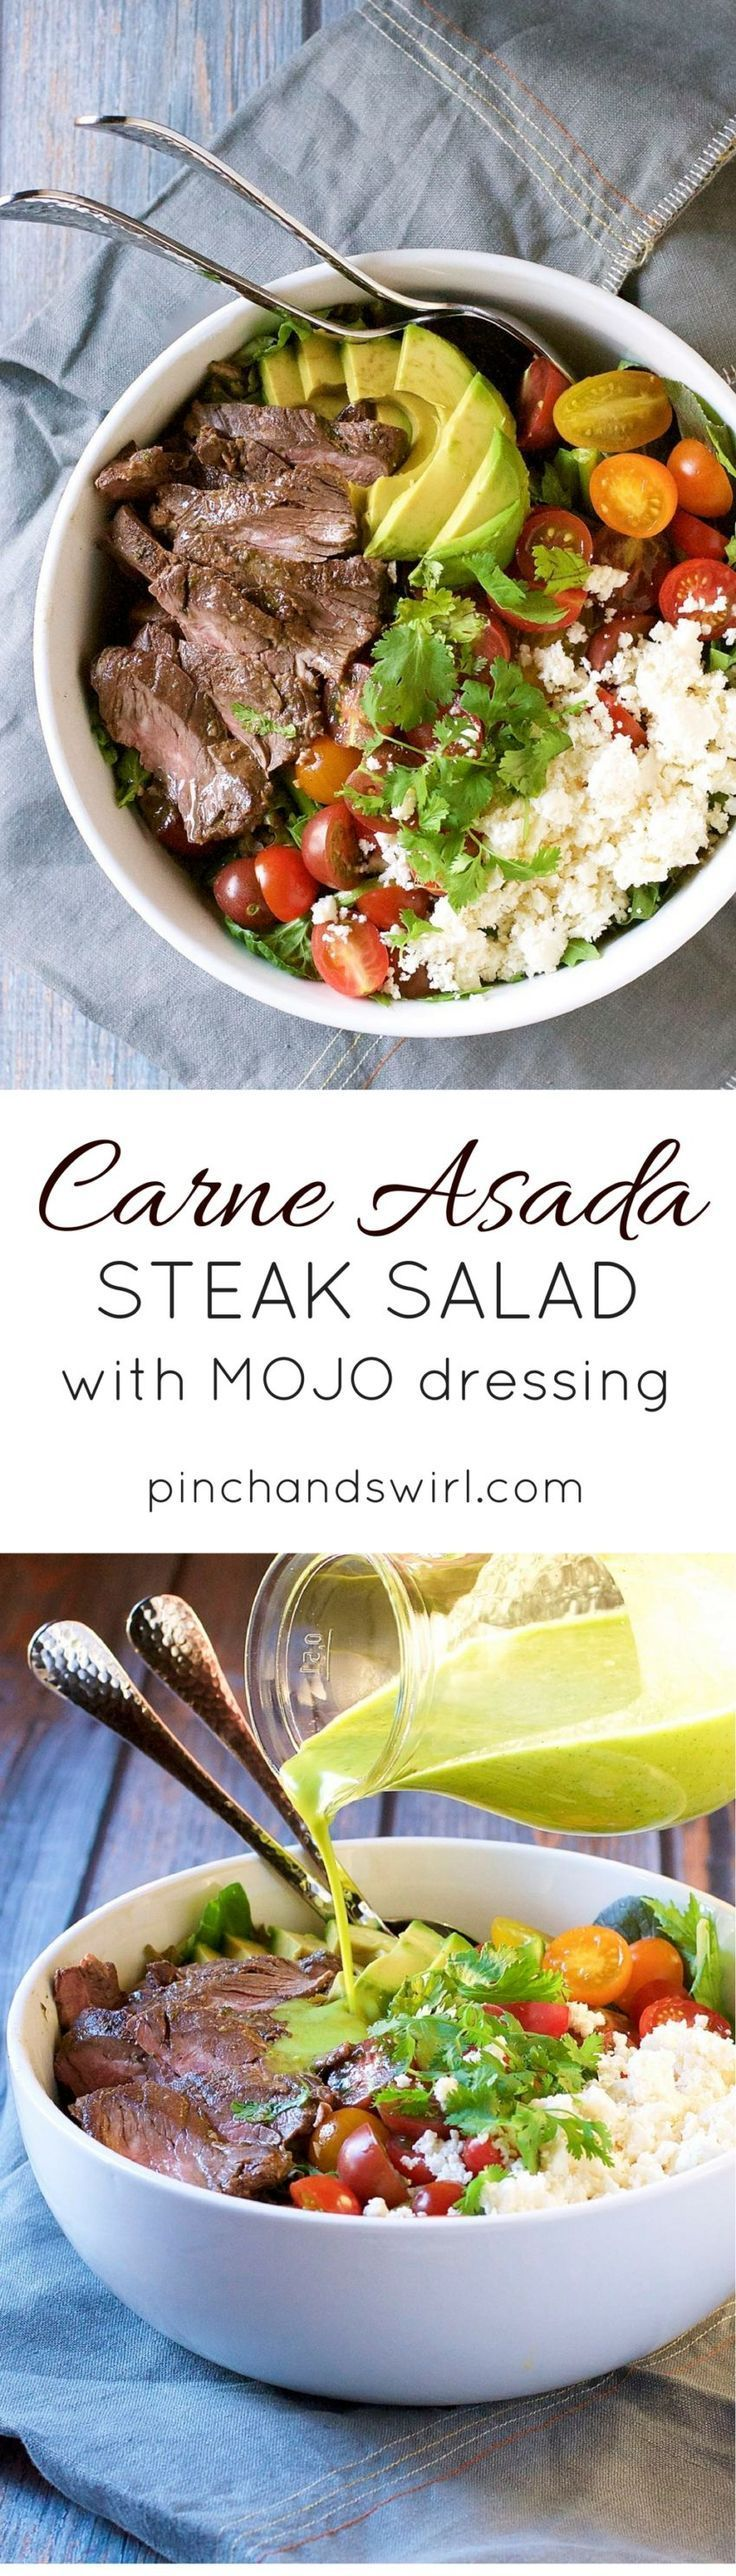 Carne Asada Steak Salad with Mojo dressing is a lightened up and delicious way to serve grilled Carne Asada steak! With steak, tomatoes, feta, avocado and a zingy Mojo dressing that's a riff on Carne Asada marinade! This and more tasty carne asada recipes